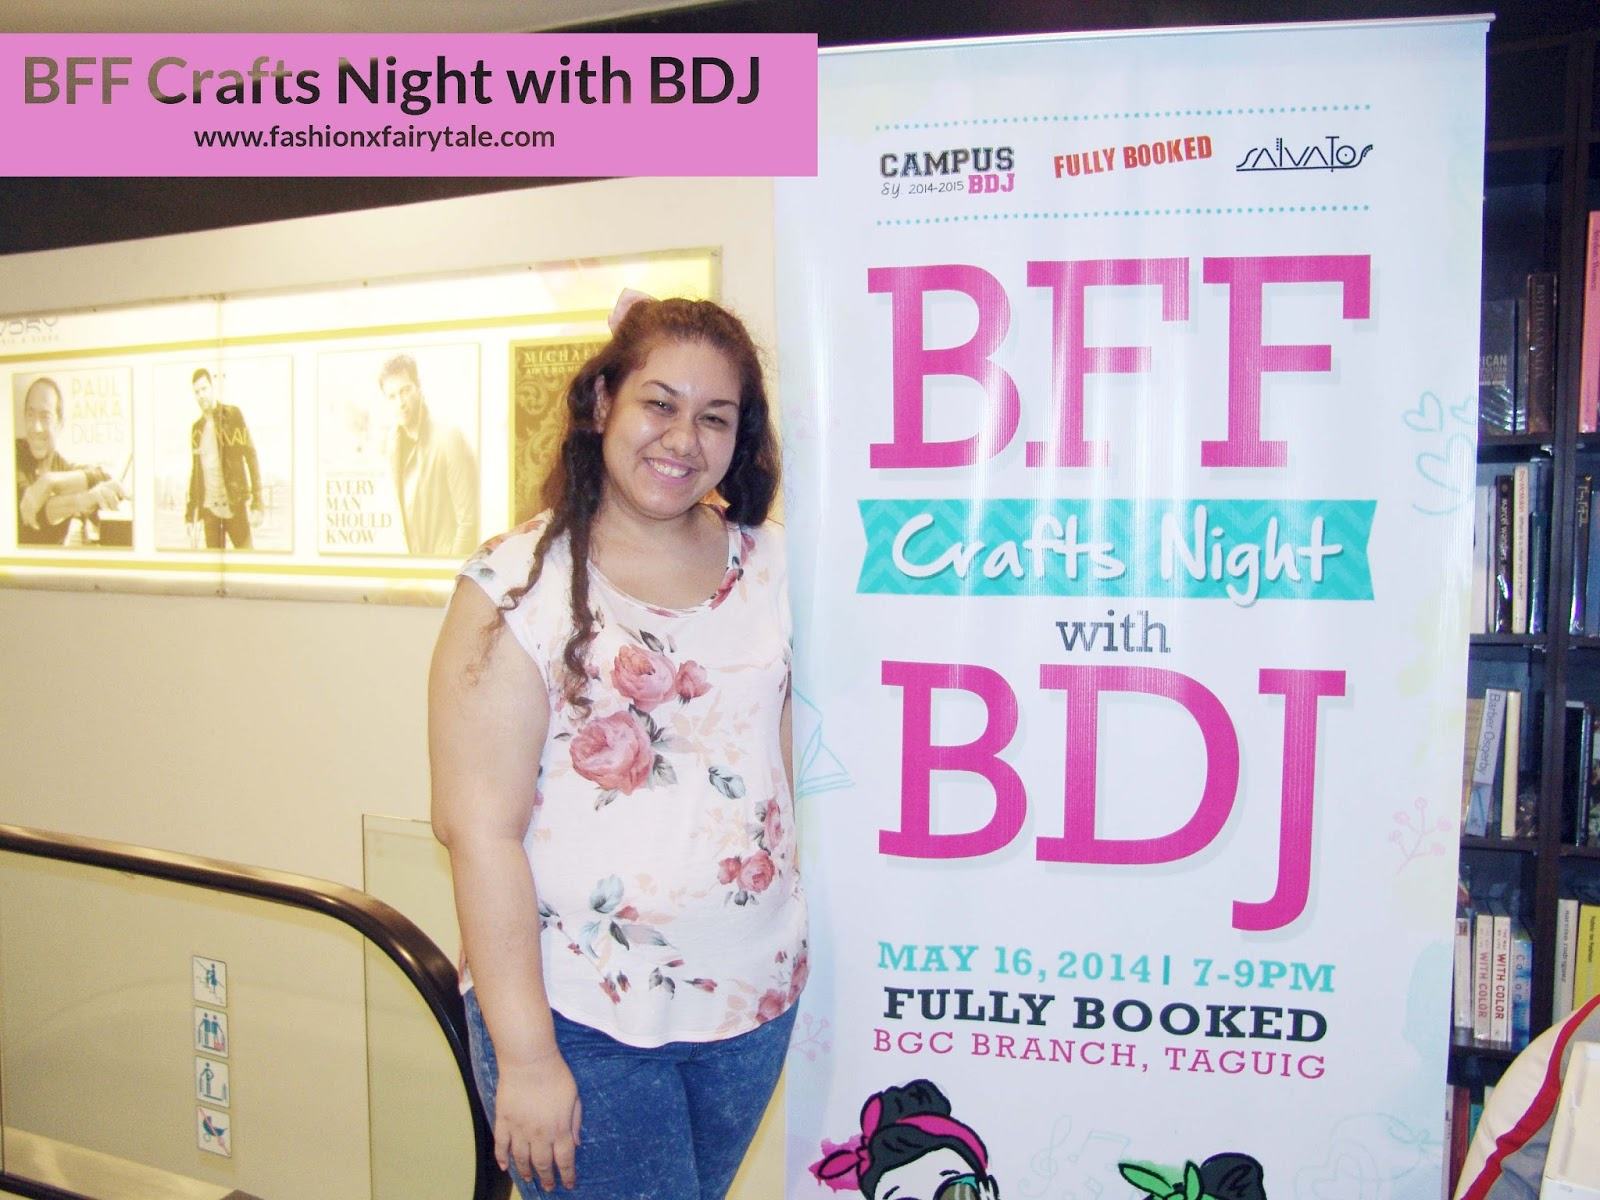 BFF Craft Night with BDJ Event